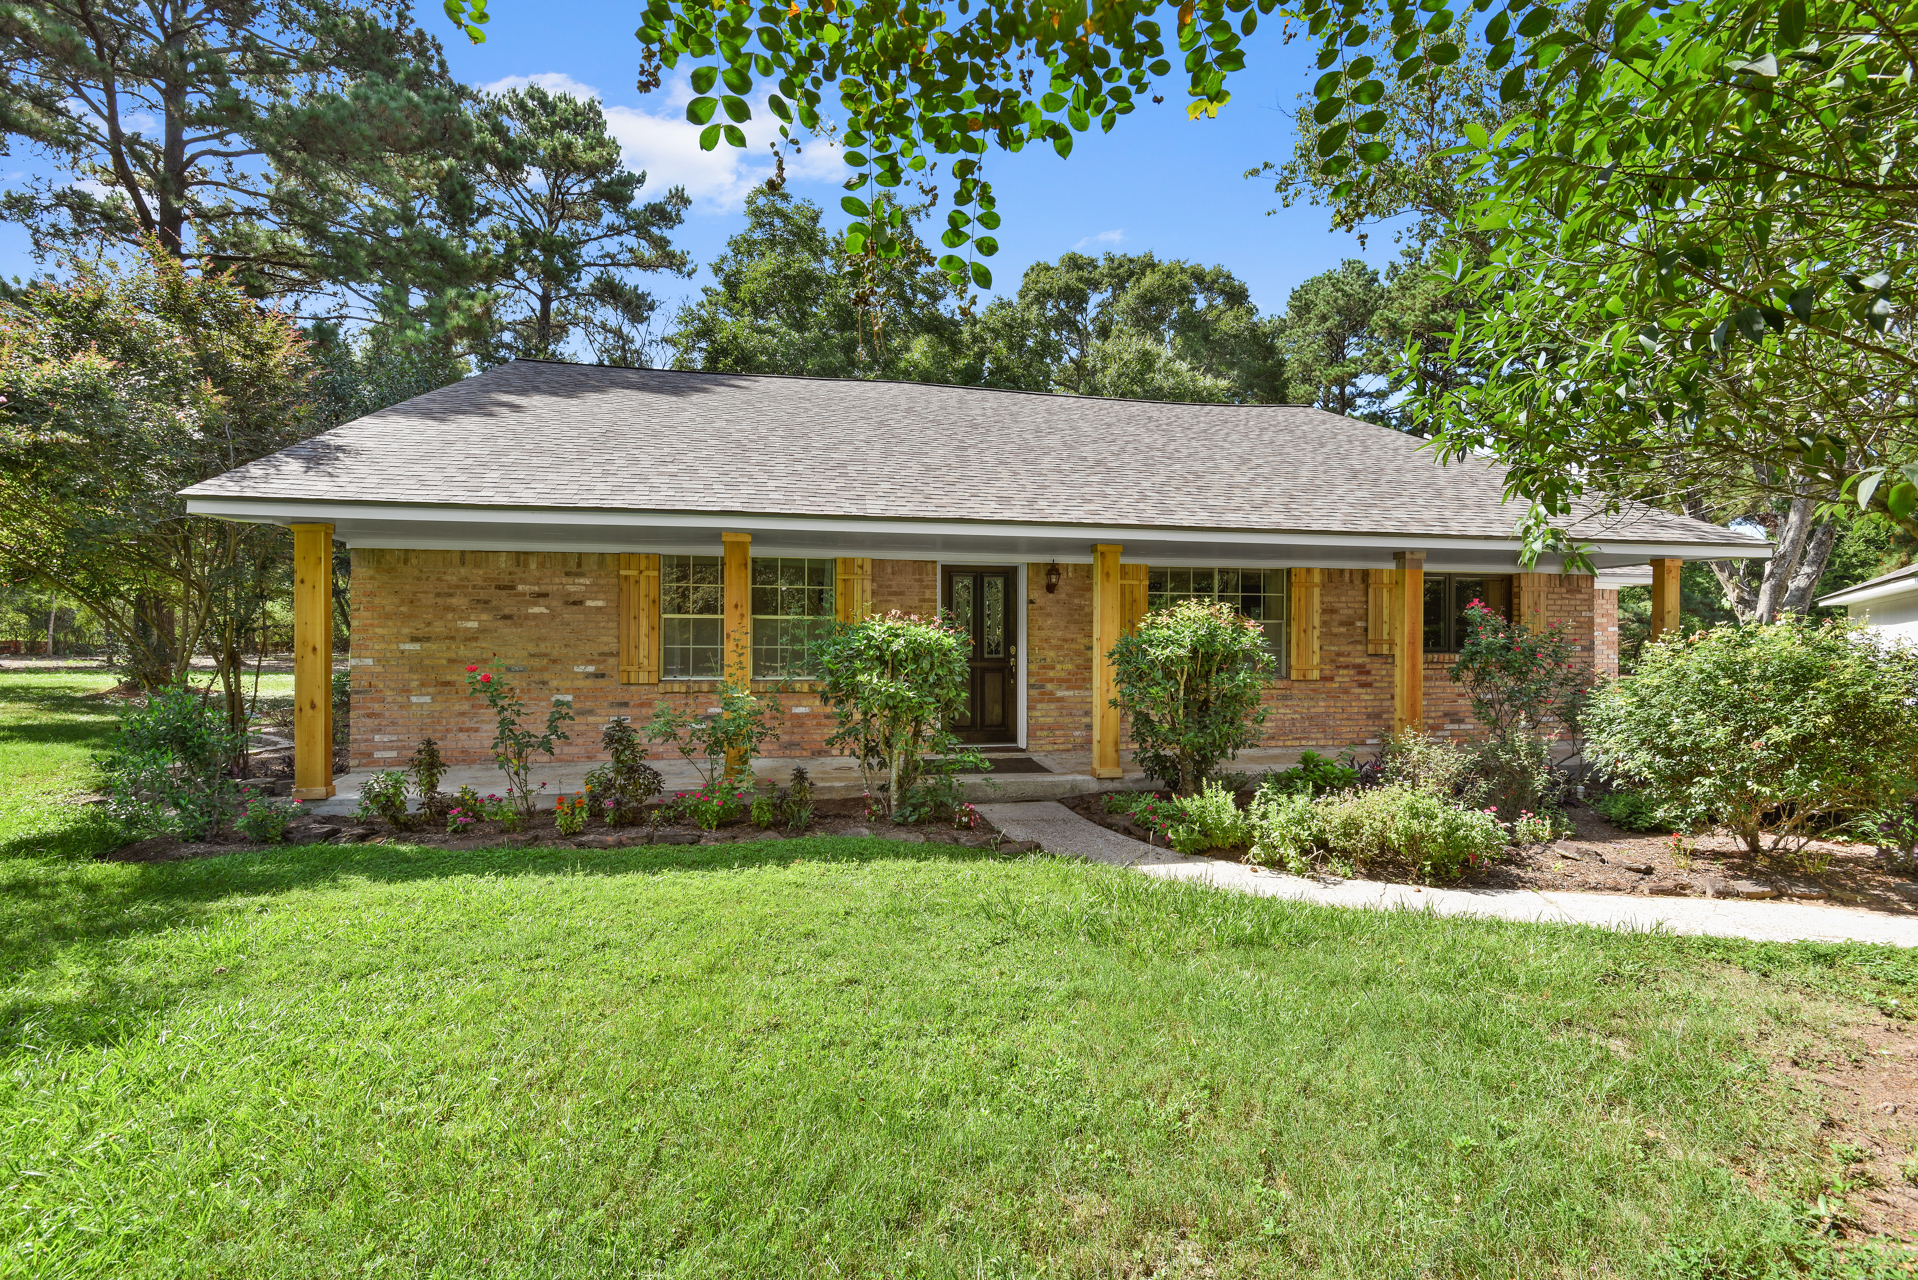 Staging The Nest - Vacant Home Staging - Exterior